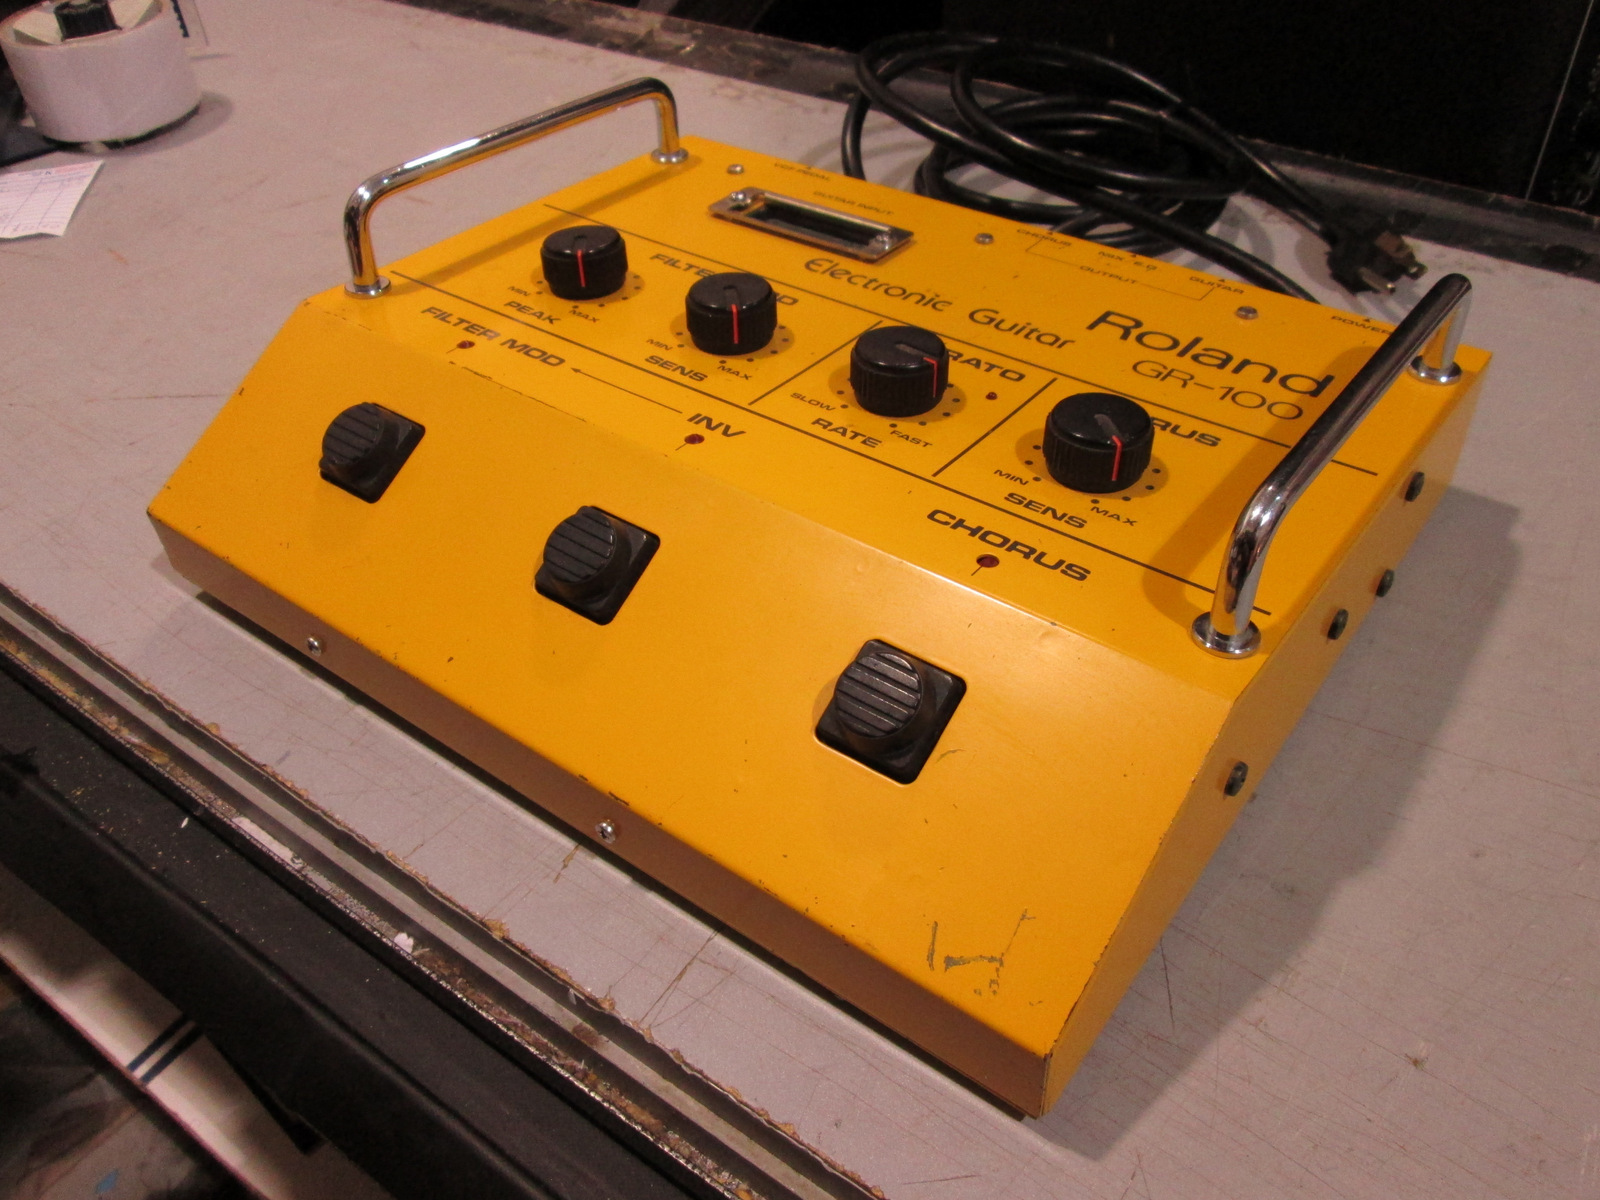 ROLAND GR-100 VINTAGE ELECTRONIC GUITAR SYNTHESIZER **RARE!**